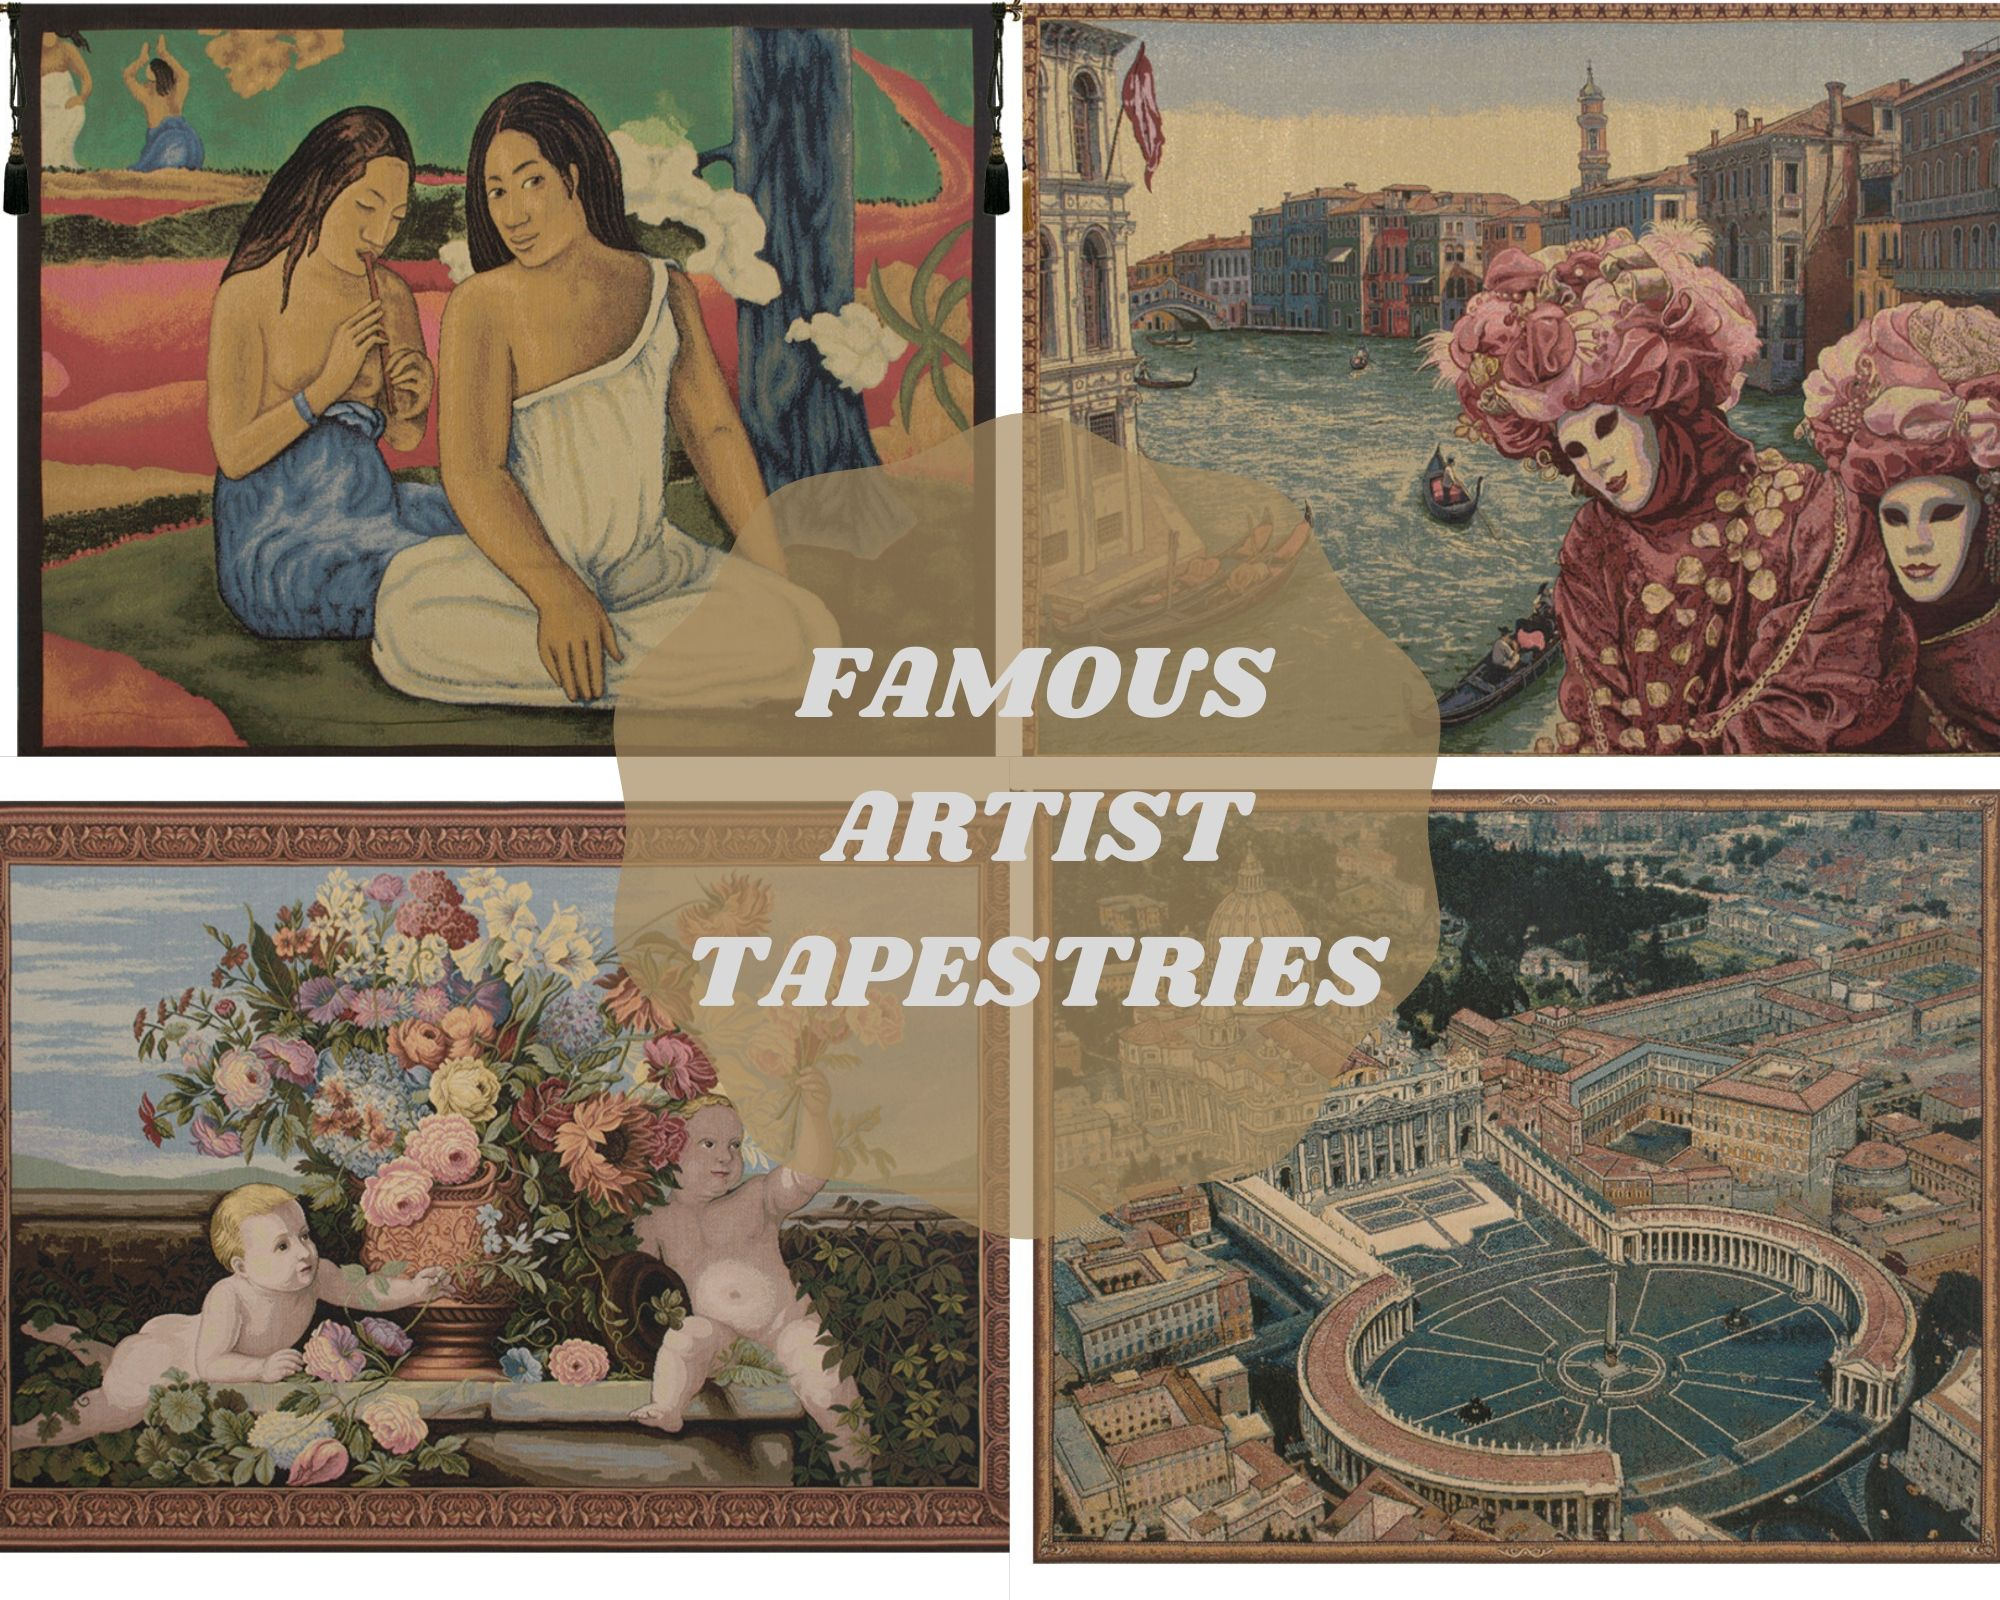 famous artist tapestry